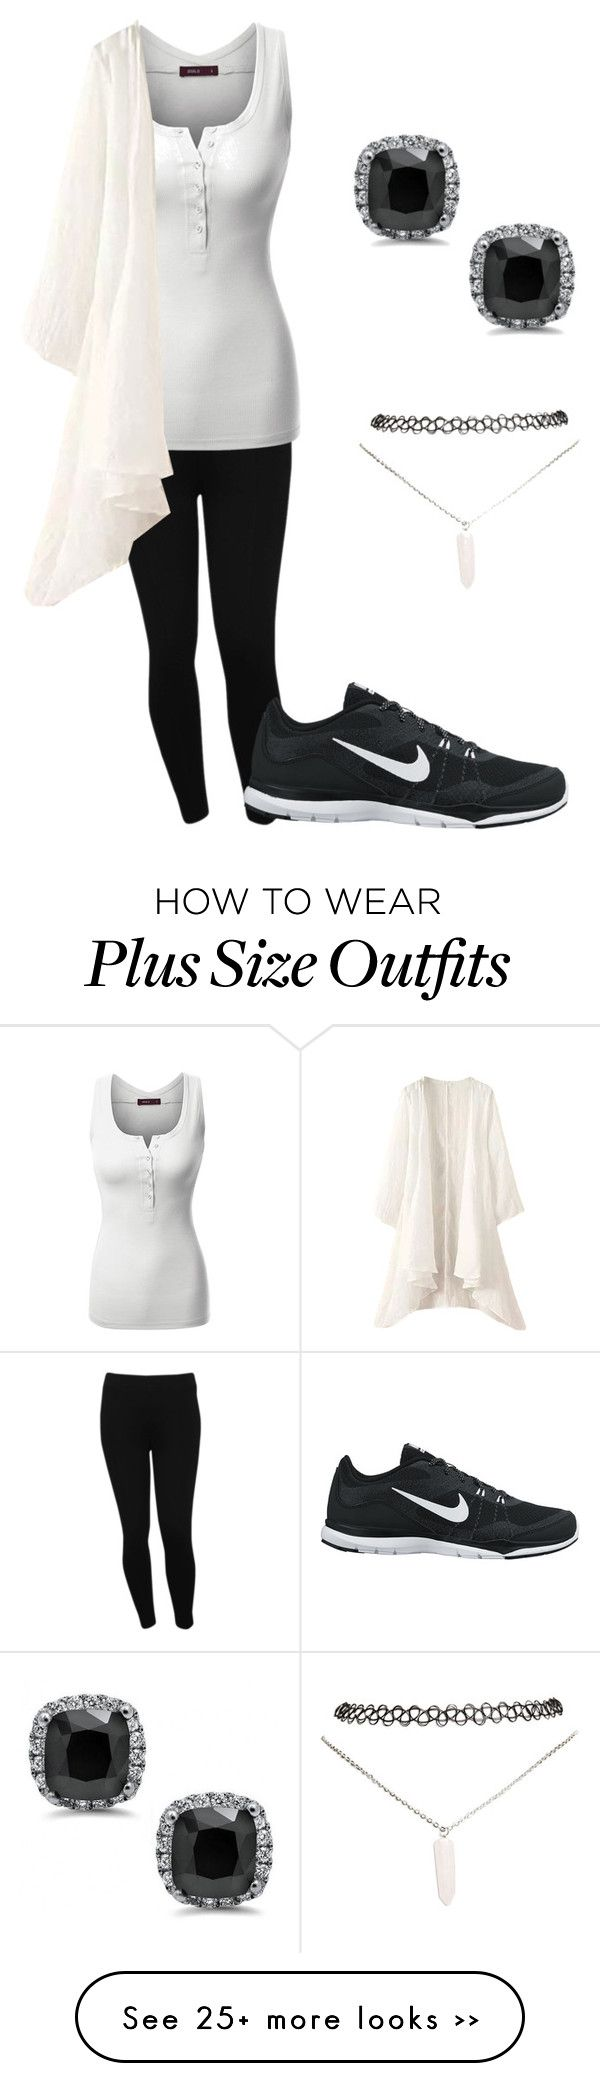 """""""Untitled #66"""" by dino-islamovic on Polyvore featuring M&Co, Doublju, NIKE and Wet Seal"""